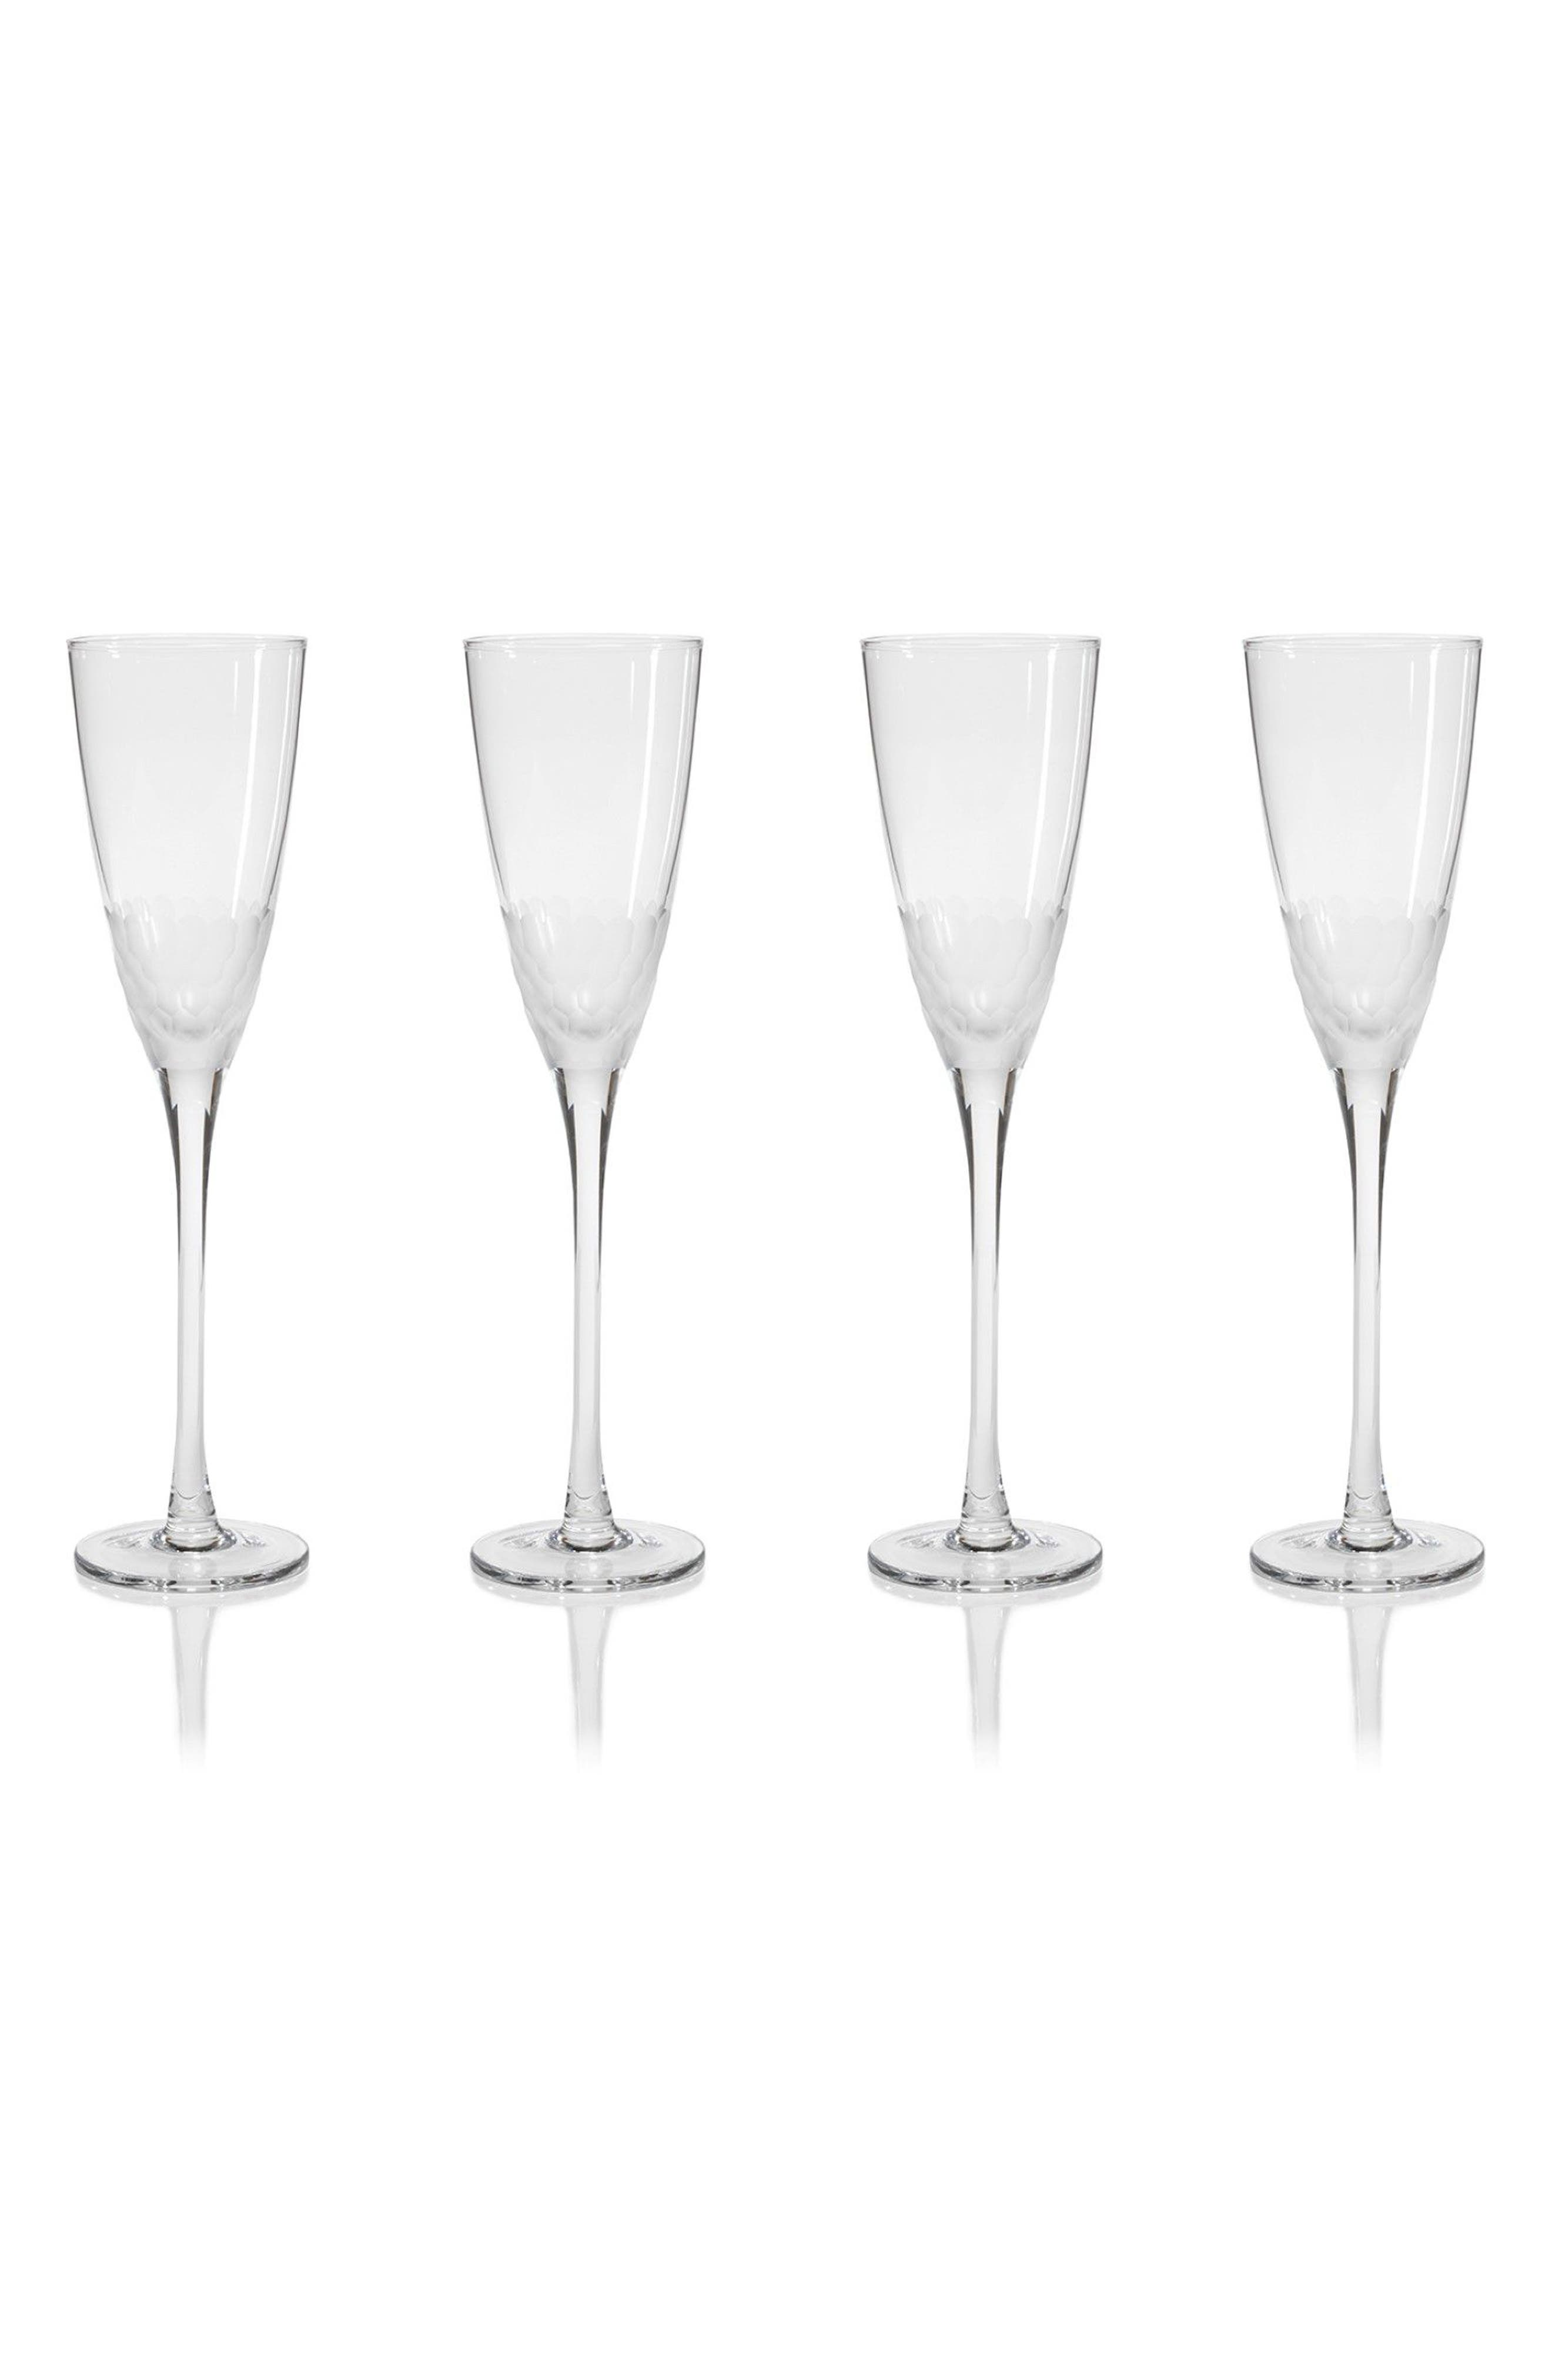 Alternate Image 1 Selected - Zodax Vitorrio Set of 4 Champagne Flutes